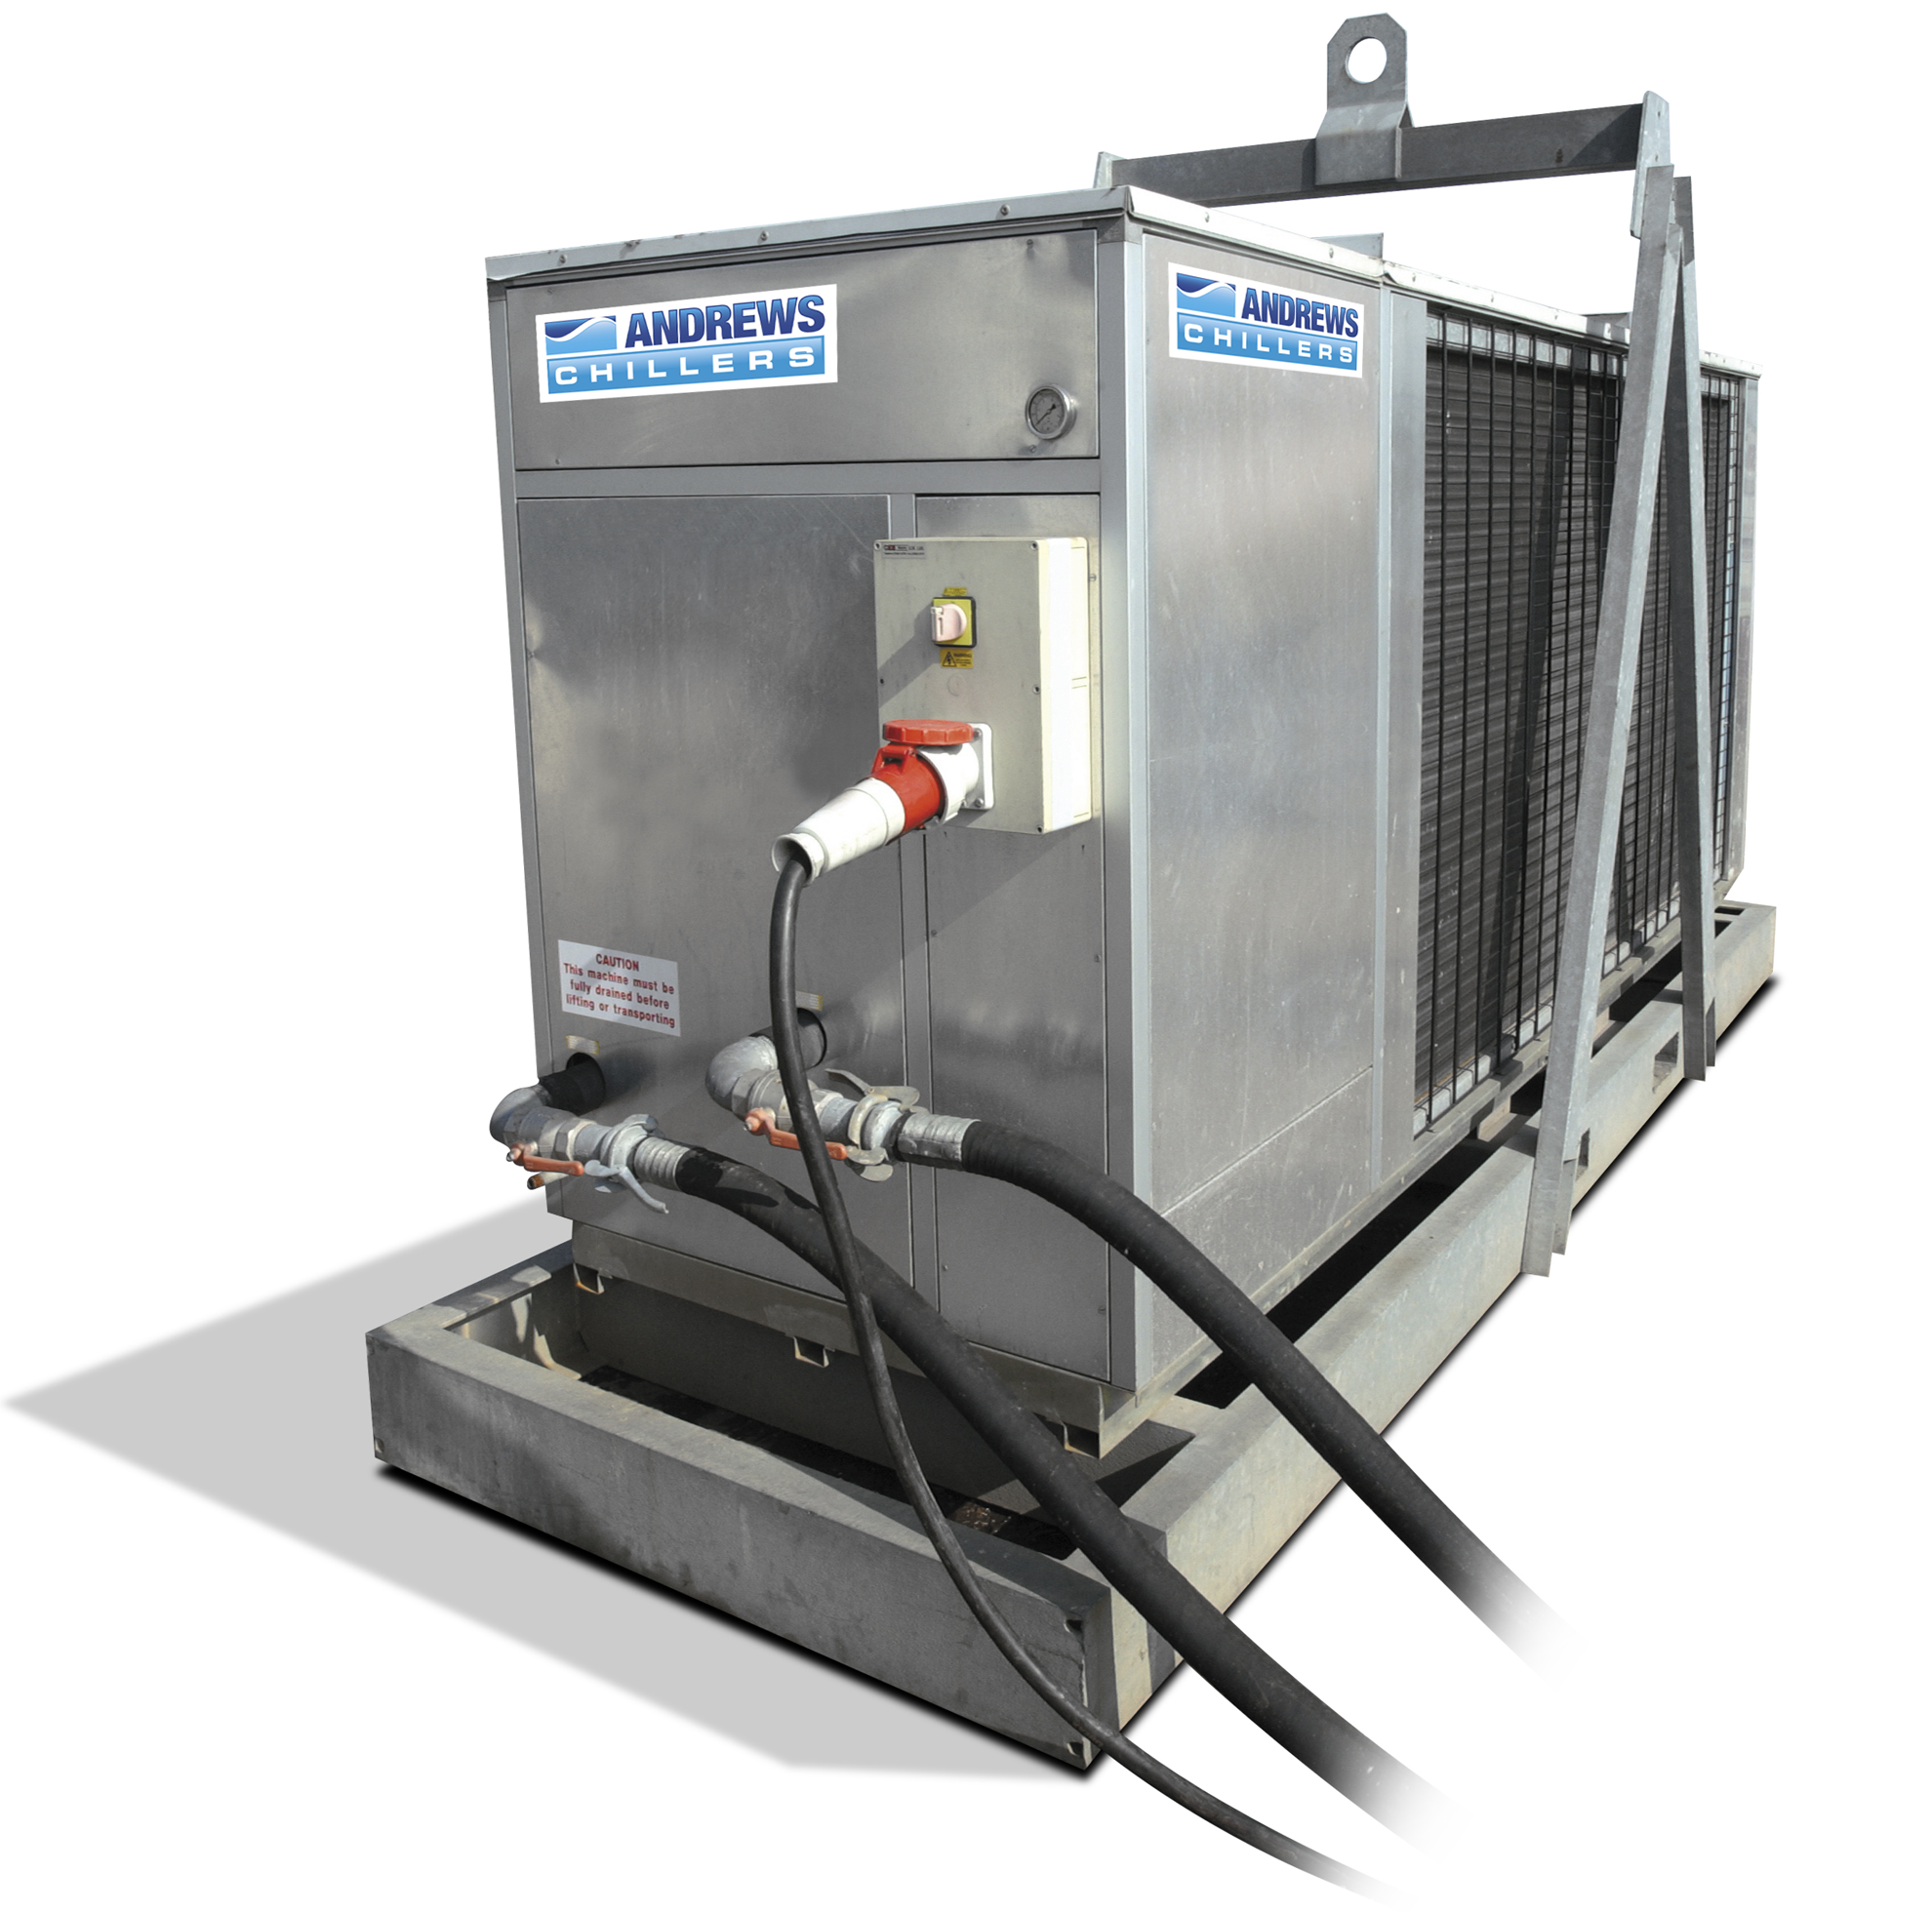 Chiller Hire View full size image #6E463C